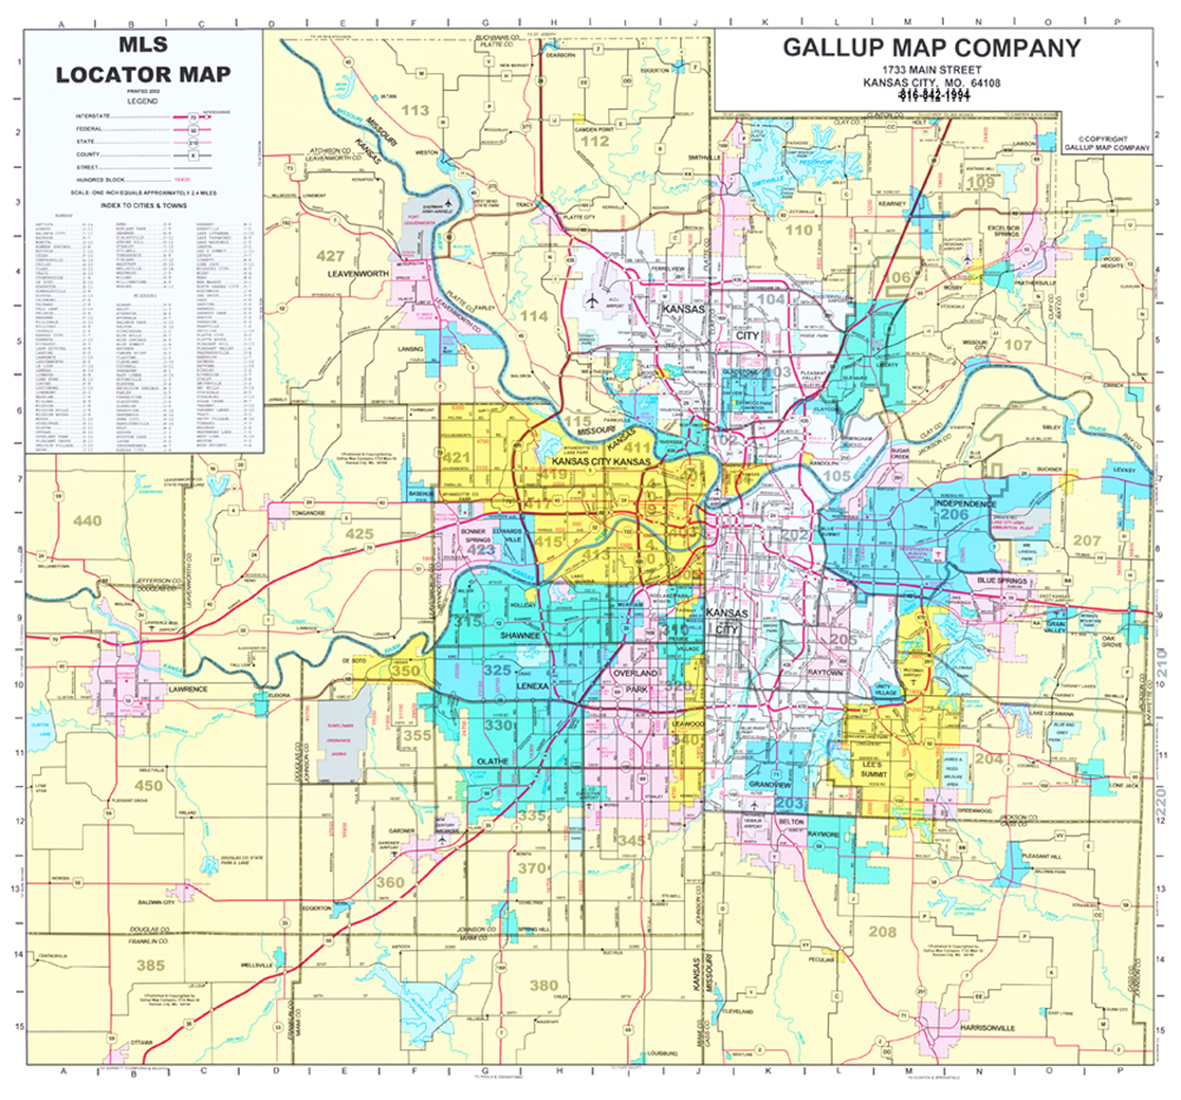 Kansas City Maps Kansas City MLS Map   Custom Sizes   Gallup Map Kansas City Maps